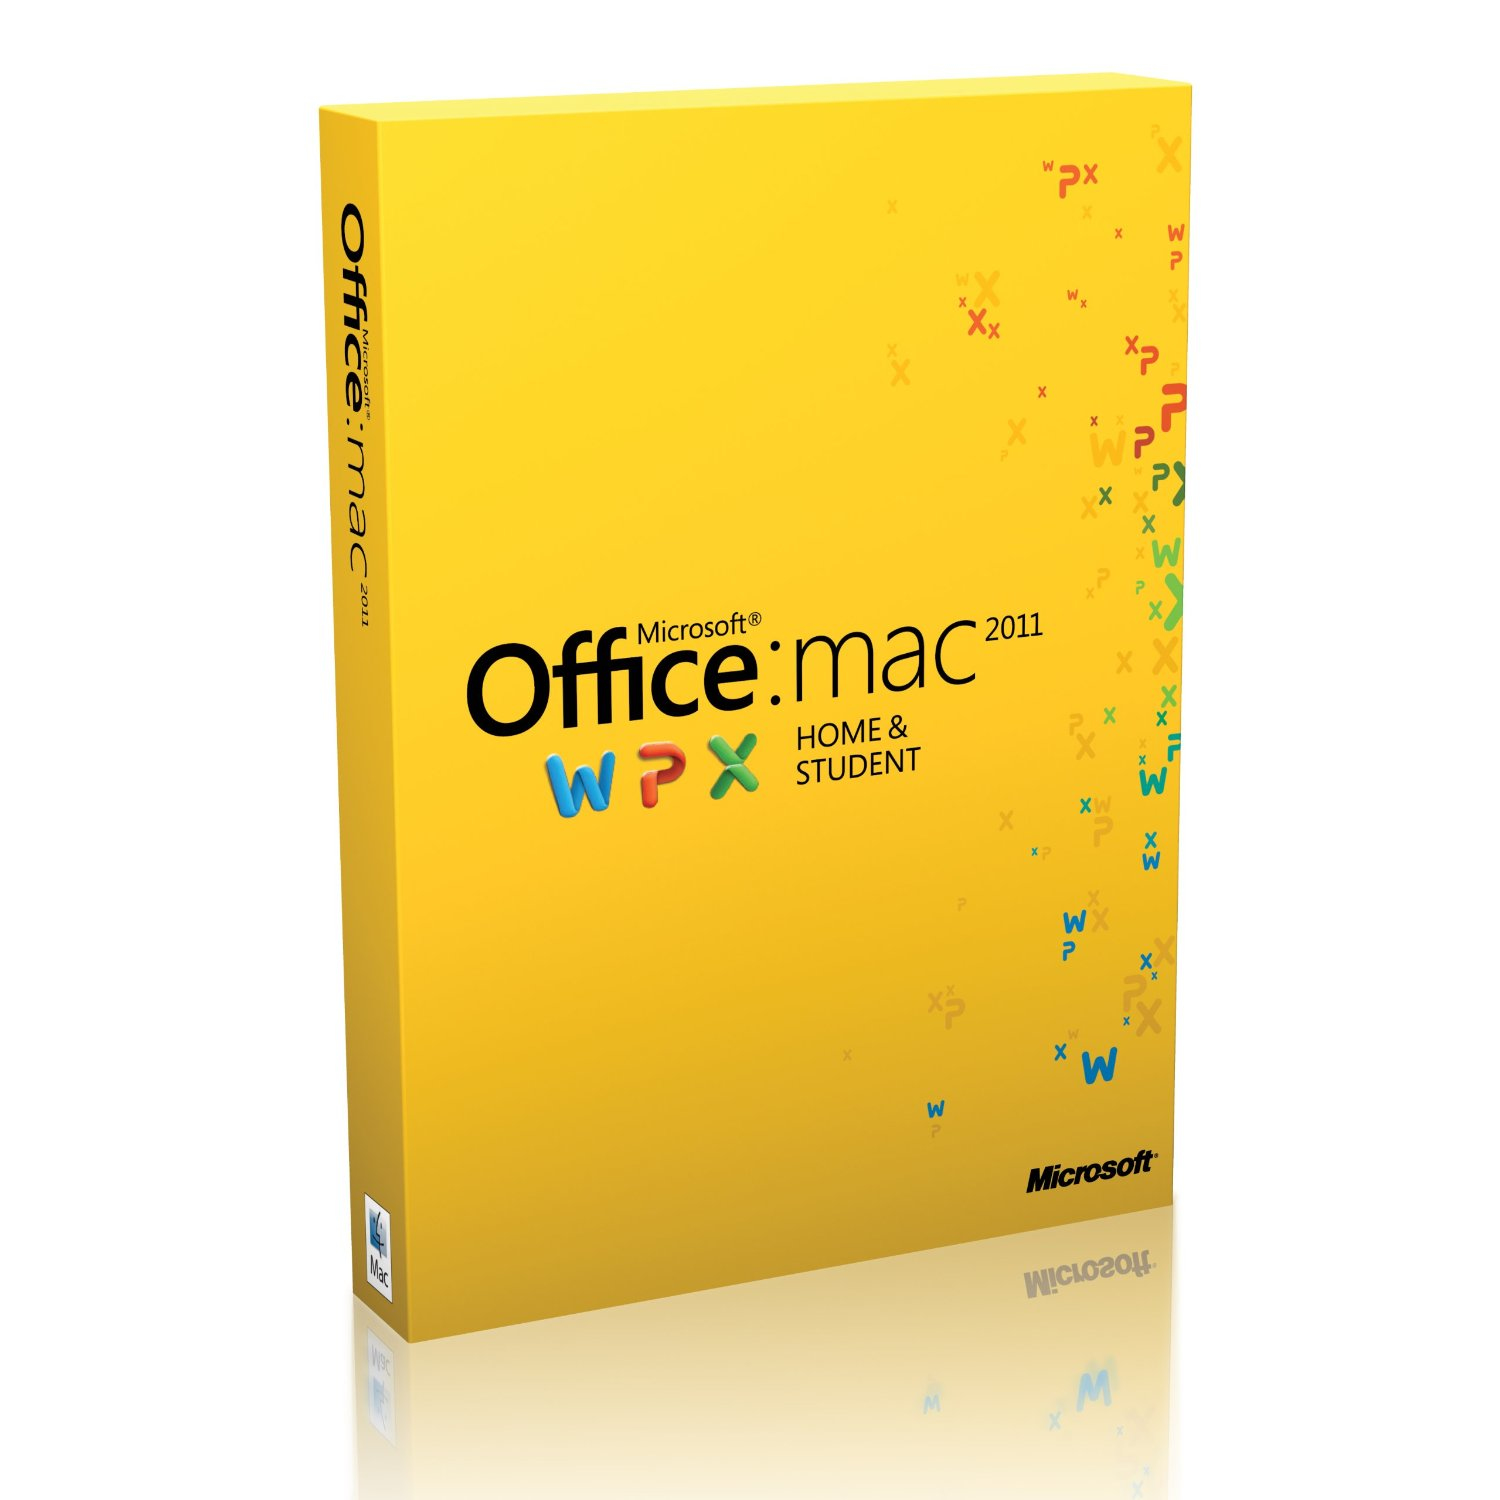 Microsoft - Hrd Software         Office Mac Home Student 2011        English Eurozone Medialess       En Gza-00269